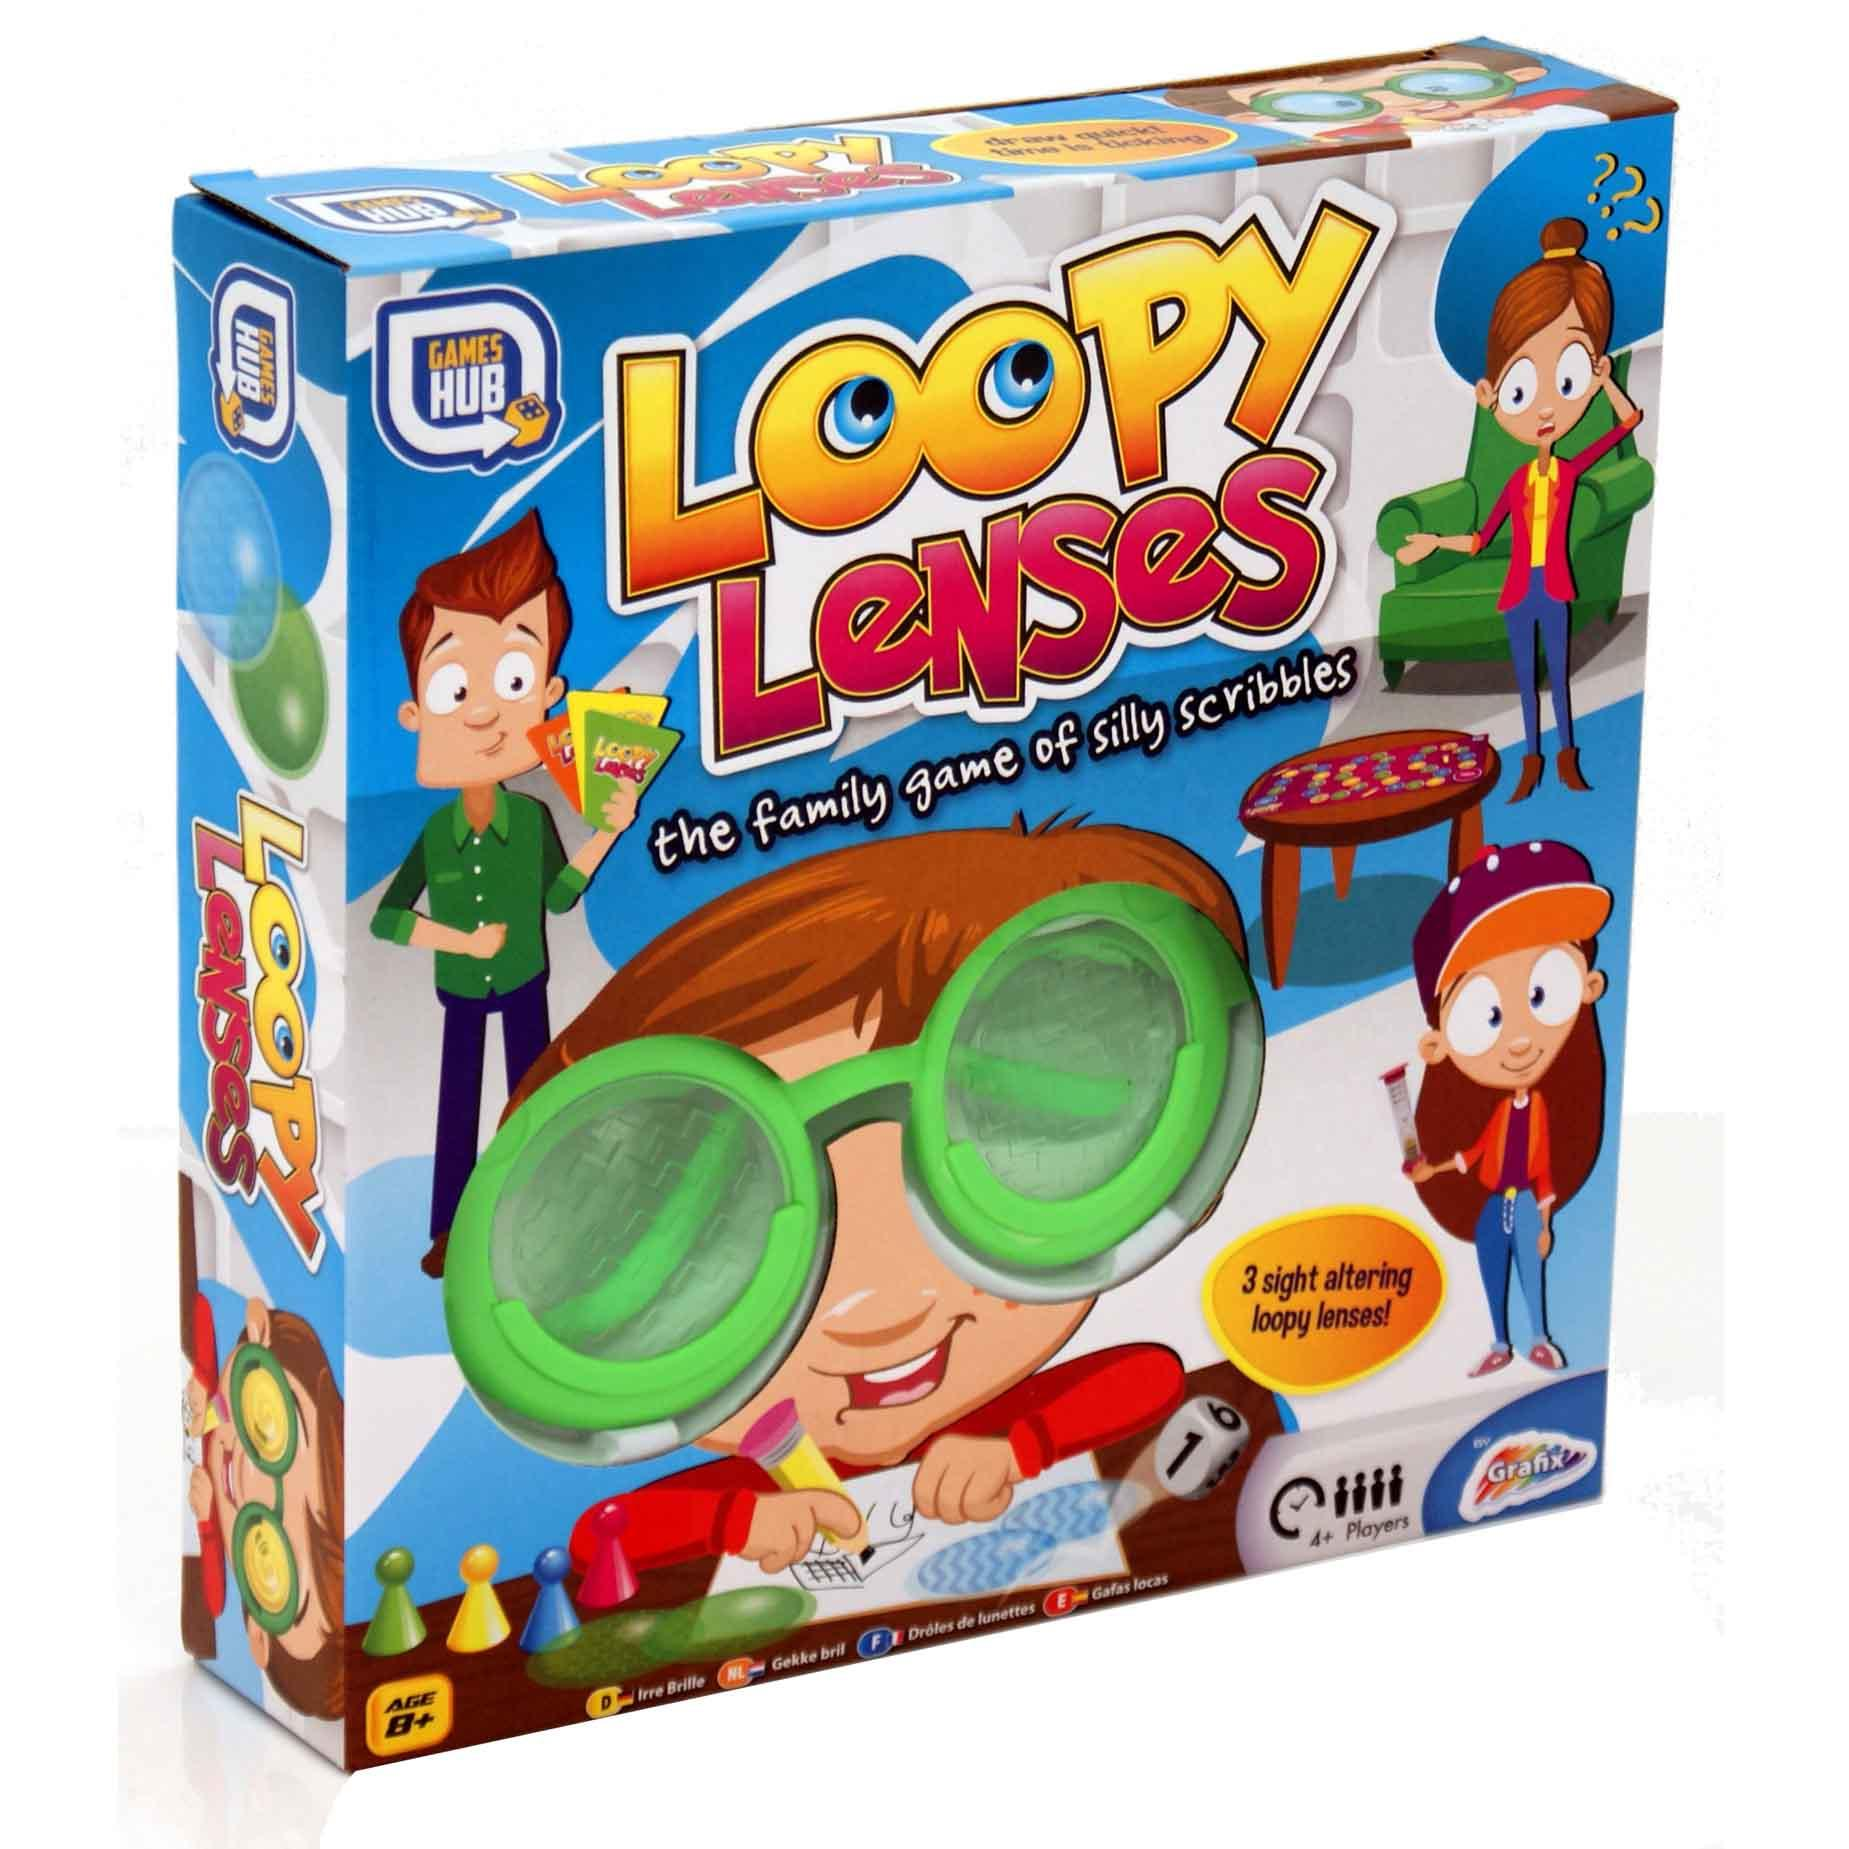 Loopy Lenses Googly Eyes Silly Glasses Fun Family Kids ...